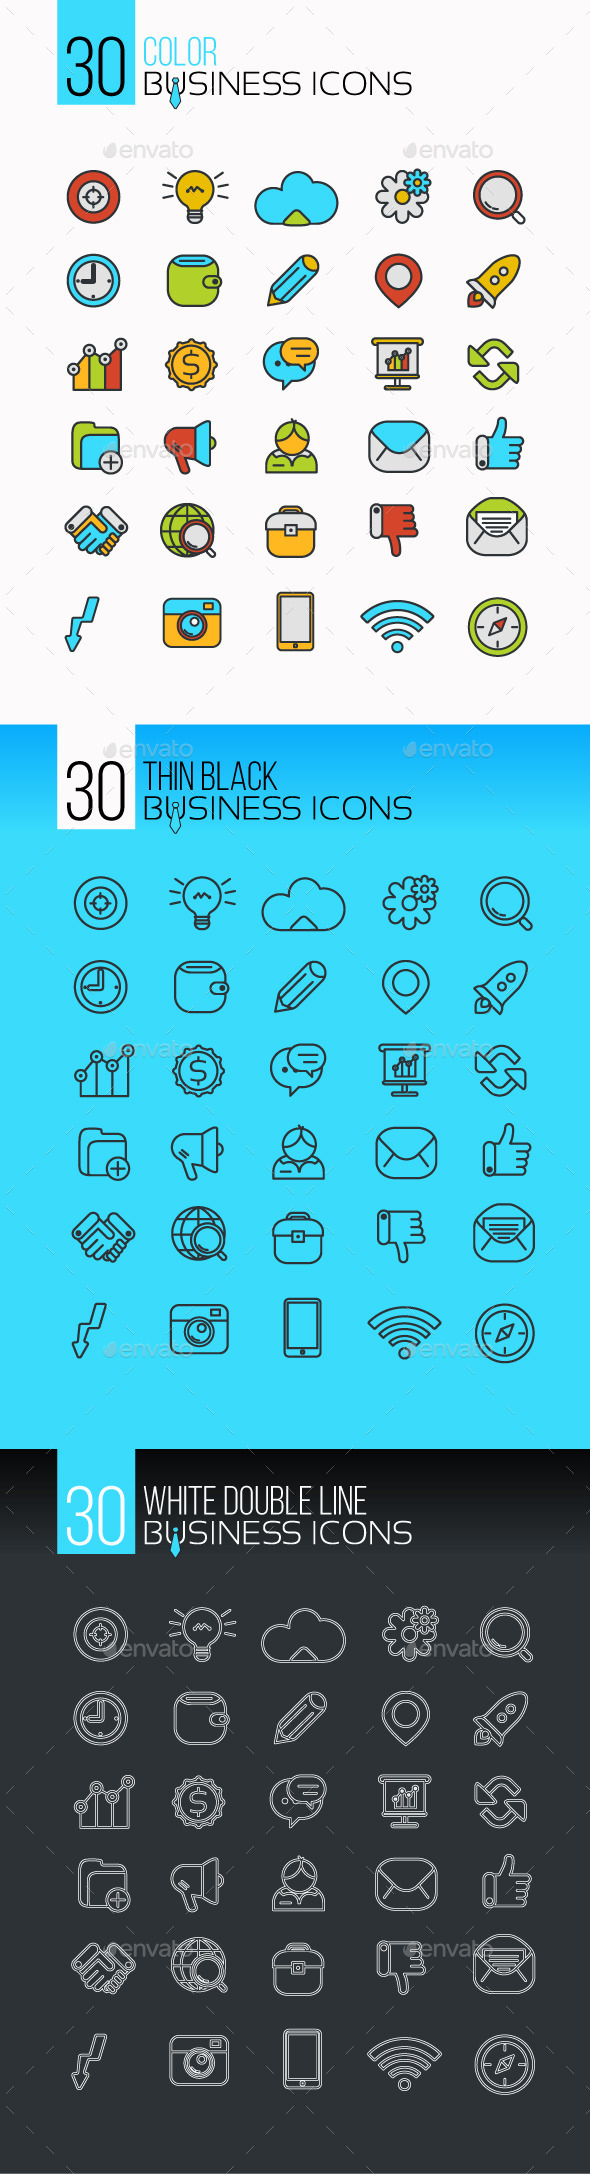 Set of Business Icons - Business Icons